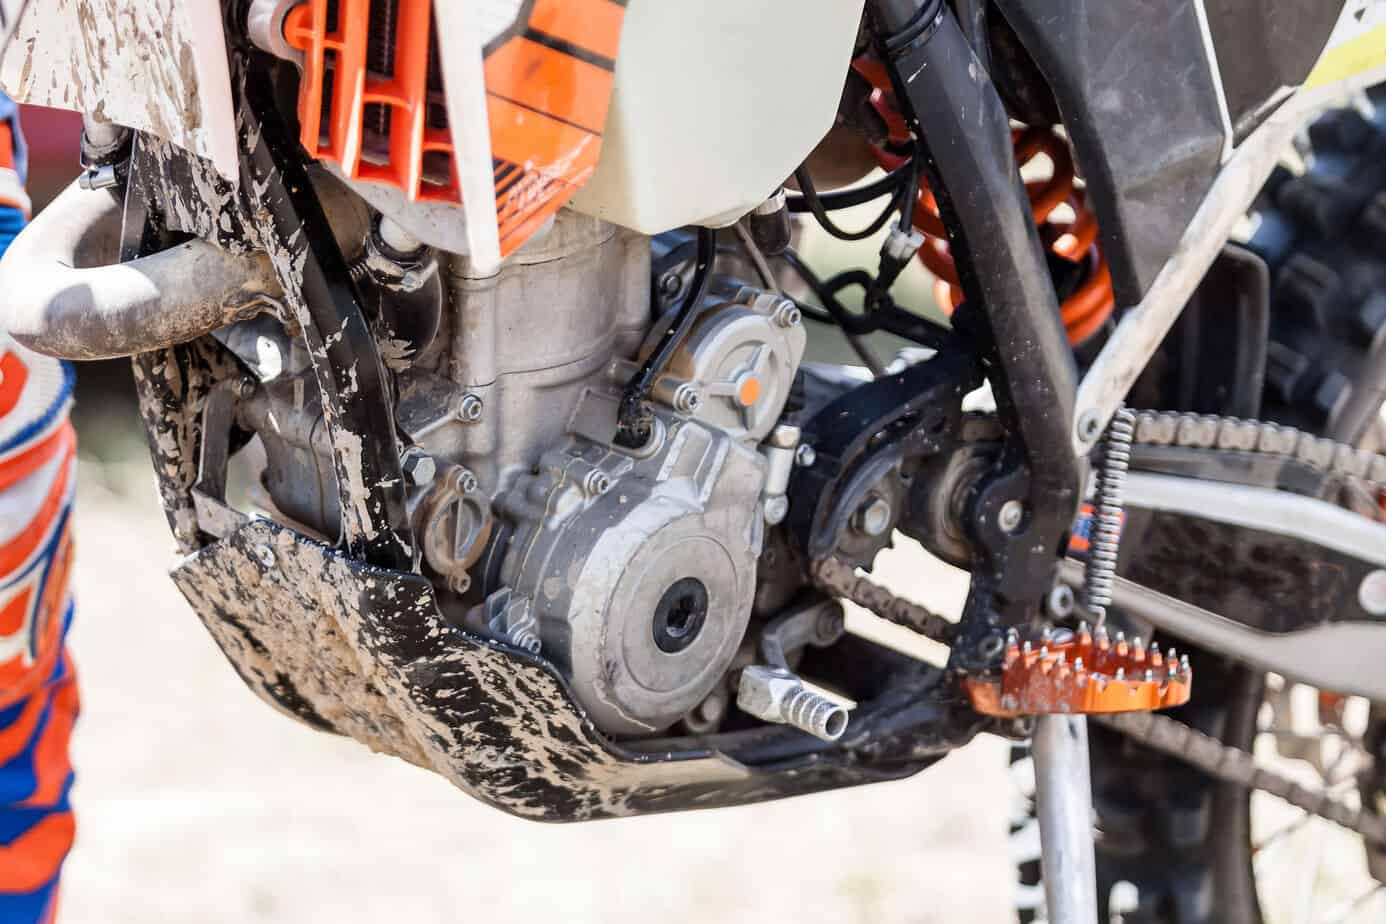 2 Stroke vs 4 Stroke Dirt Bikes: 21 Pros and cons you should know